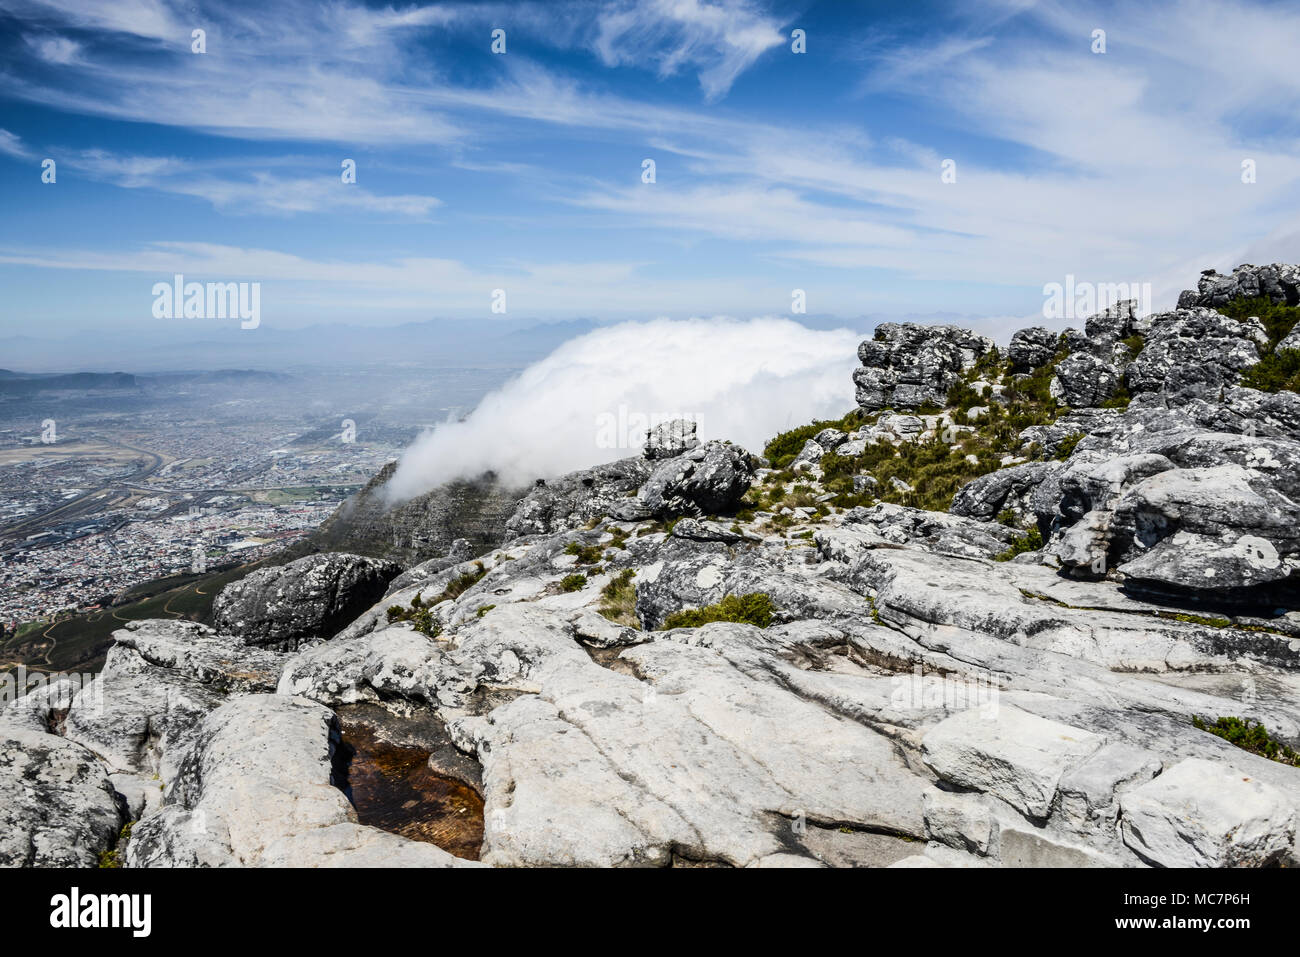 The suburbs of Cape Town below Devil's Peak covered in low cloud seen from the top of Table Mountain, Cape Town, South Africa - Stock Image